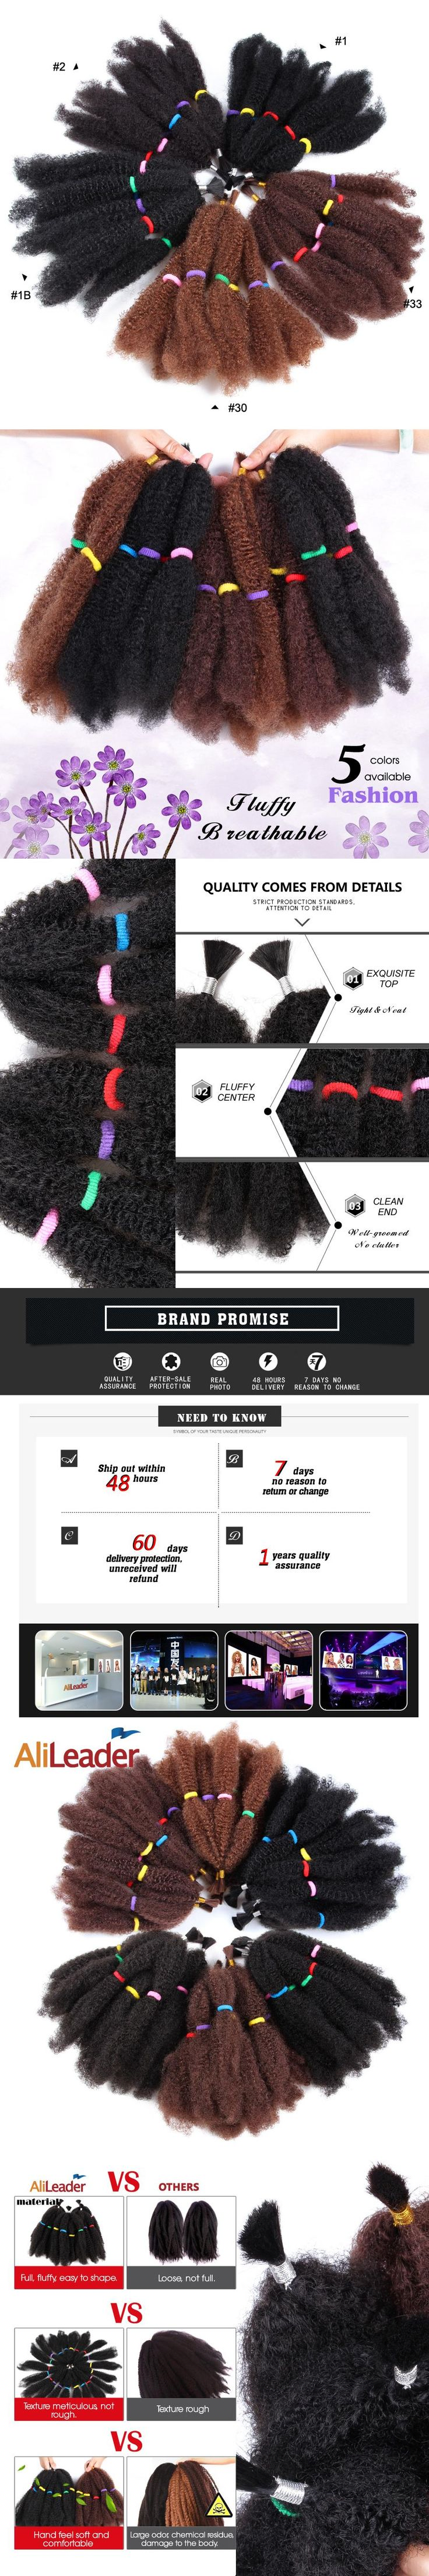 Alileader Collection Afro Extensions Bulk Hair Small Kinky Curly 12 Inch Pure Color Pre Braided Hair Extensions Synthetic Weave